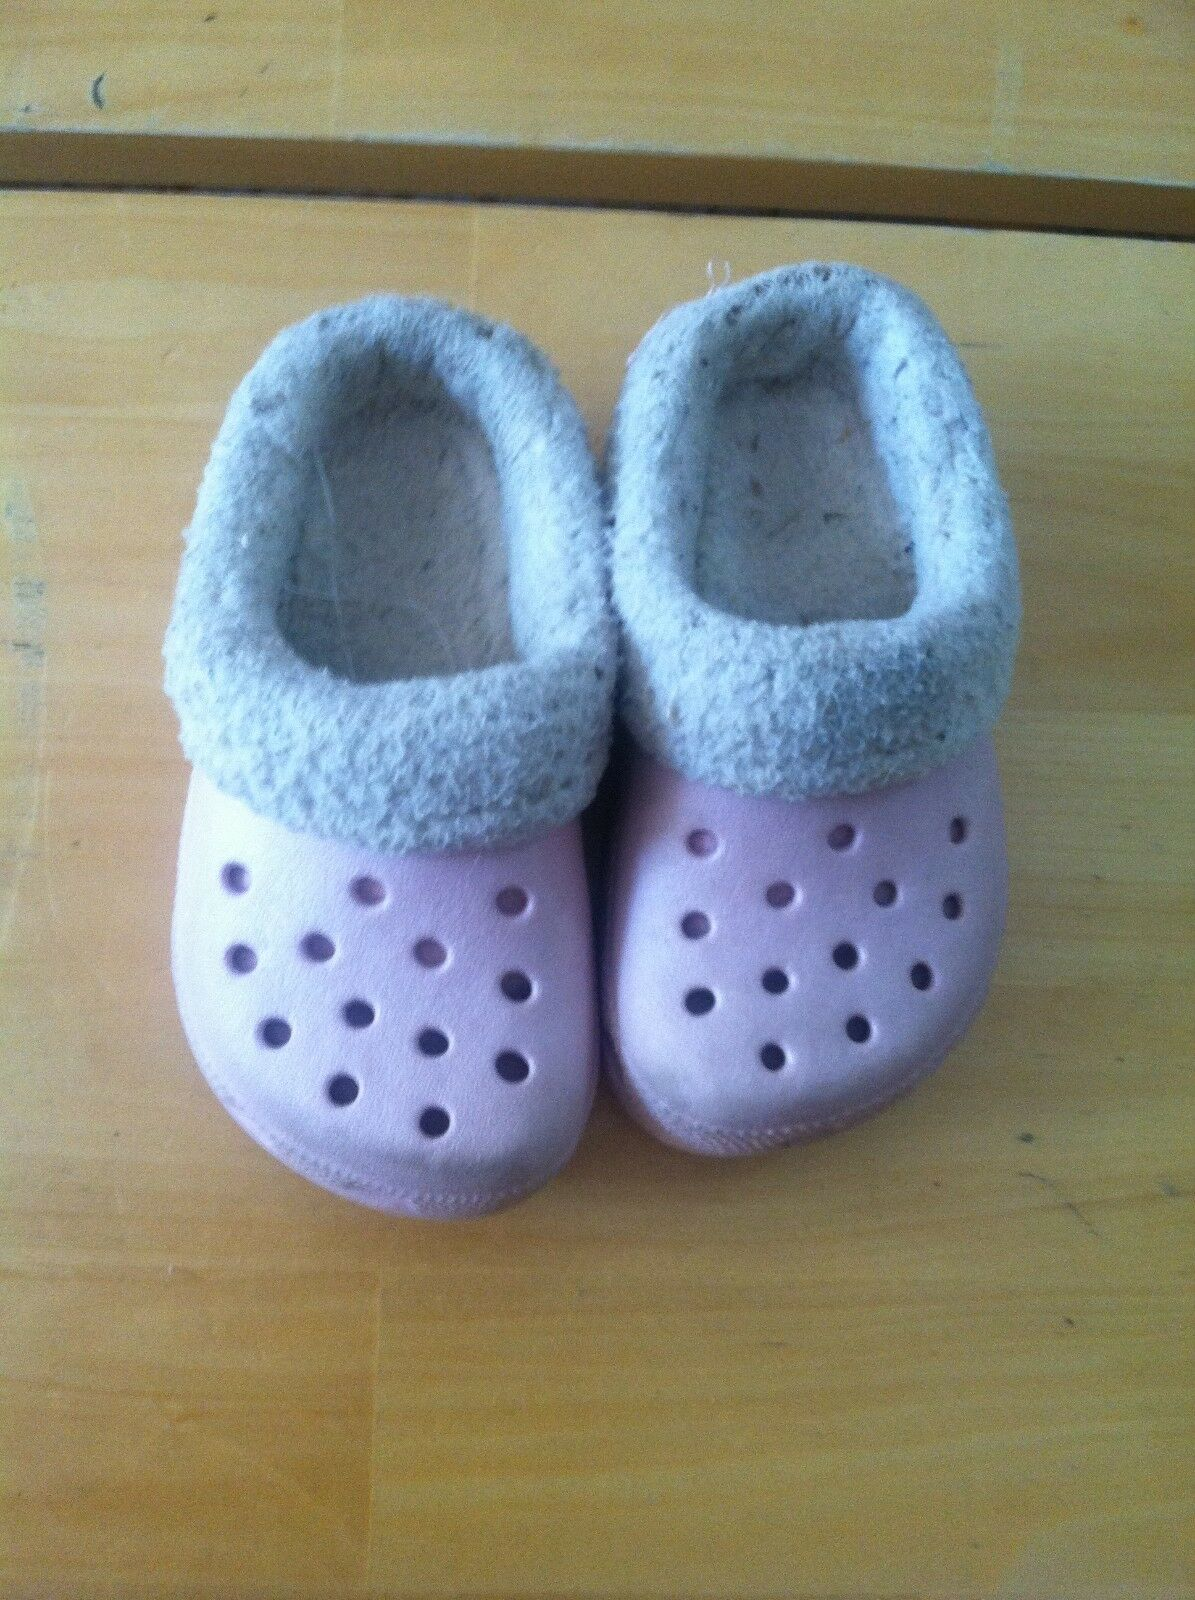 bff01931d UPC 883503925632 product image for Crocs Mammoth Shoes Pink Baby Size 6 C 7